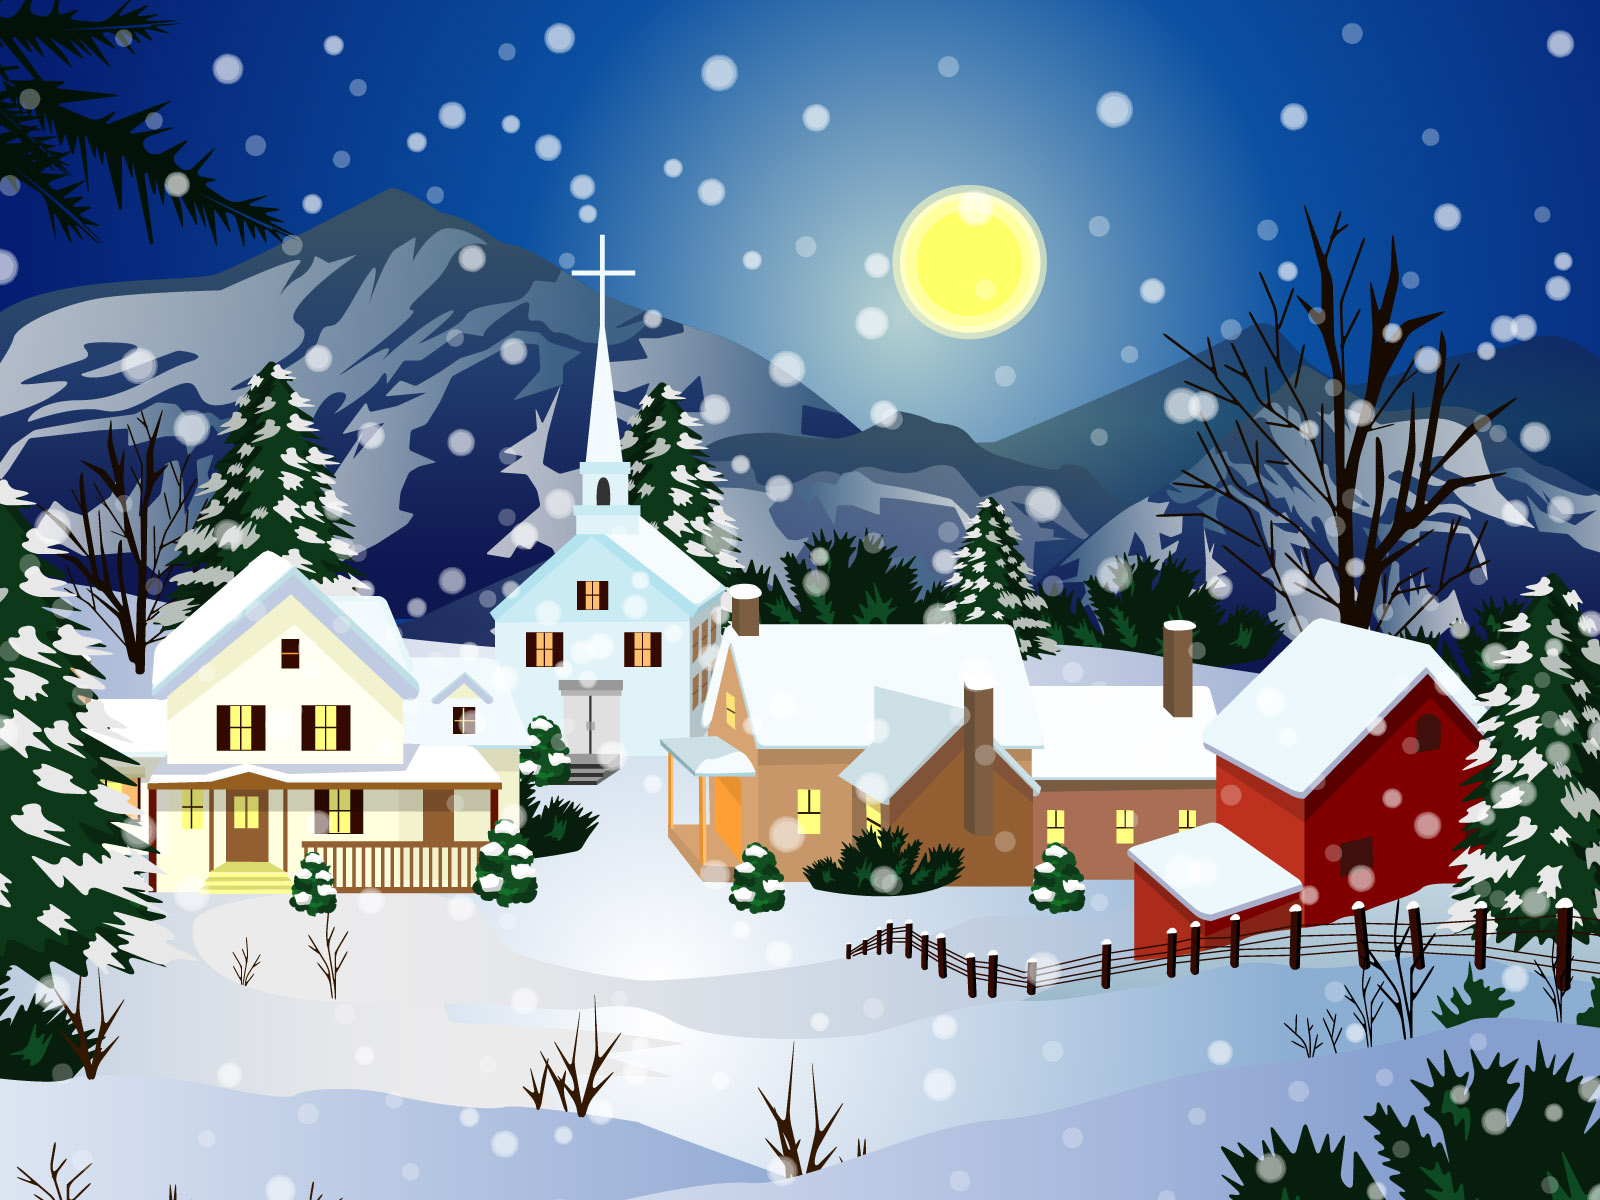 clip art and picture: christmas wallpapers free download.